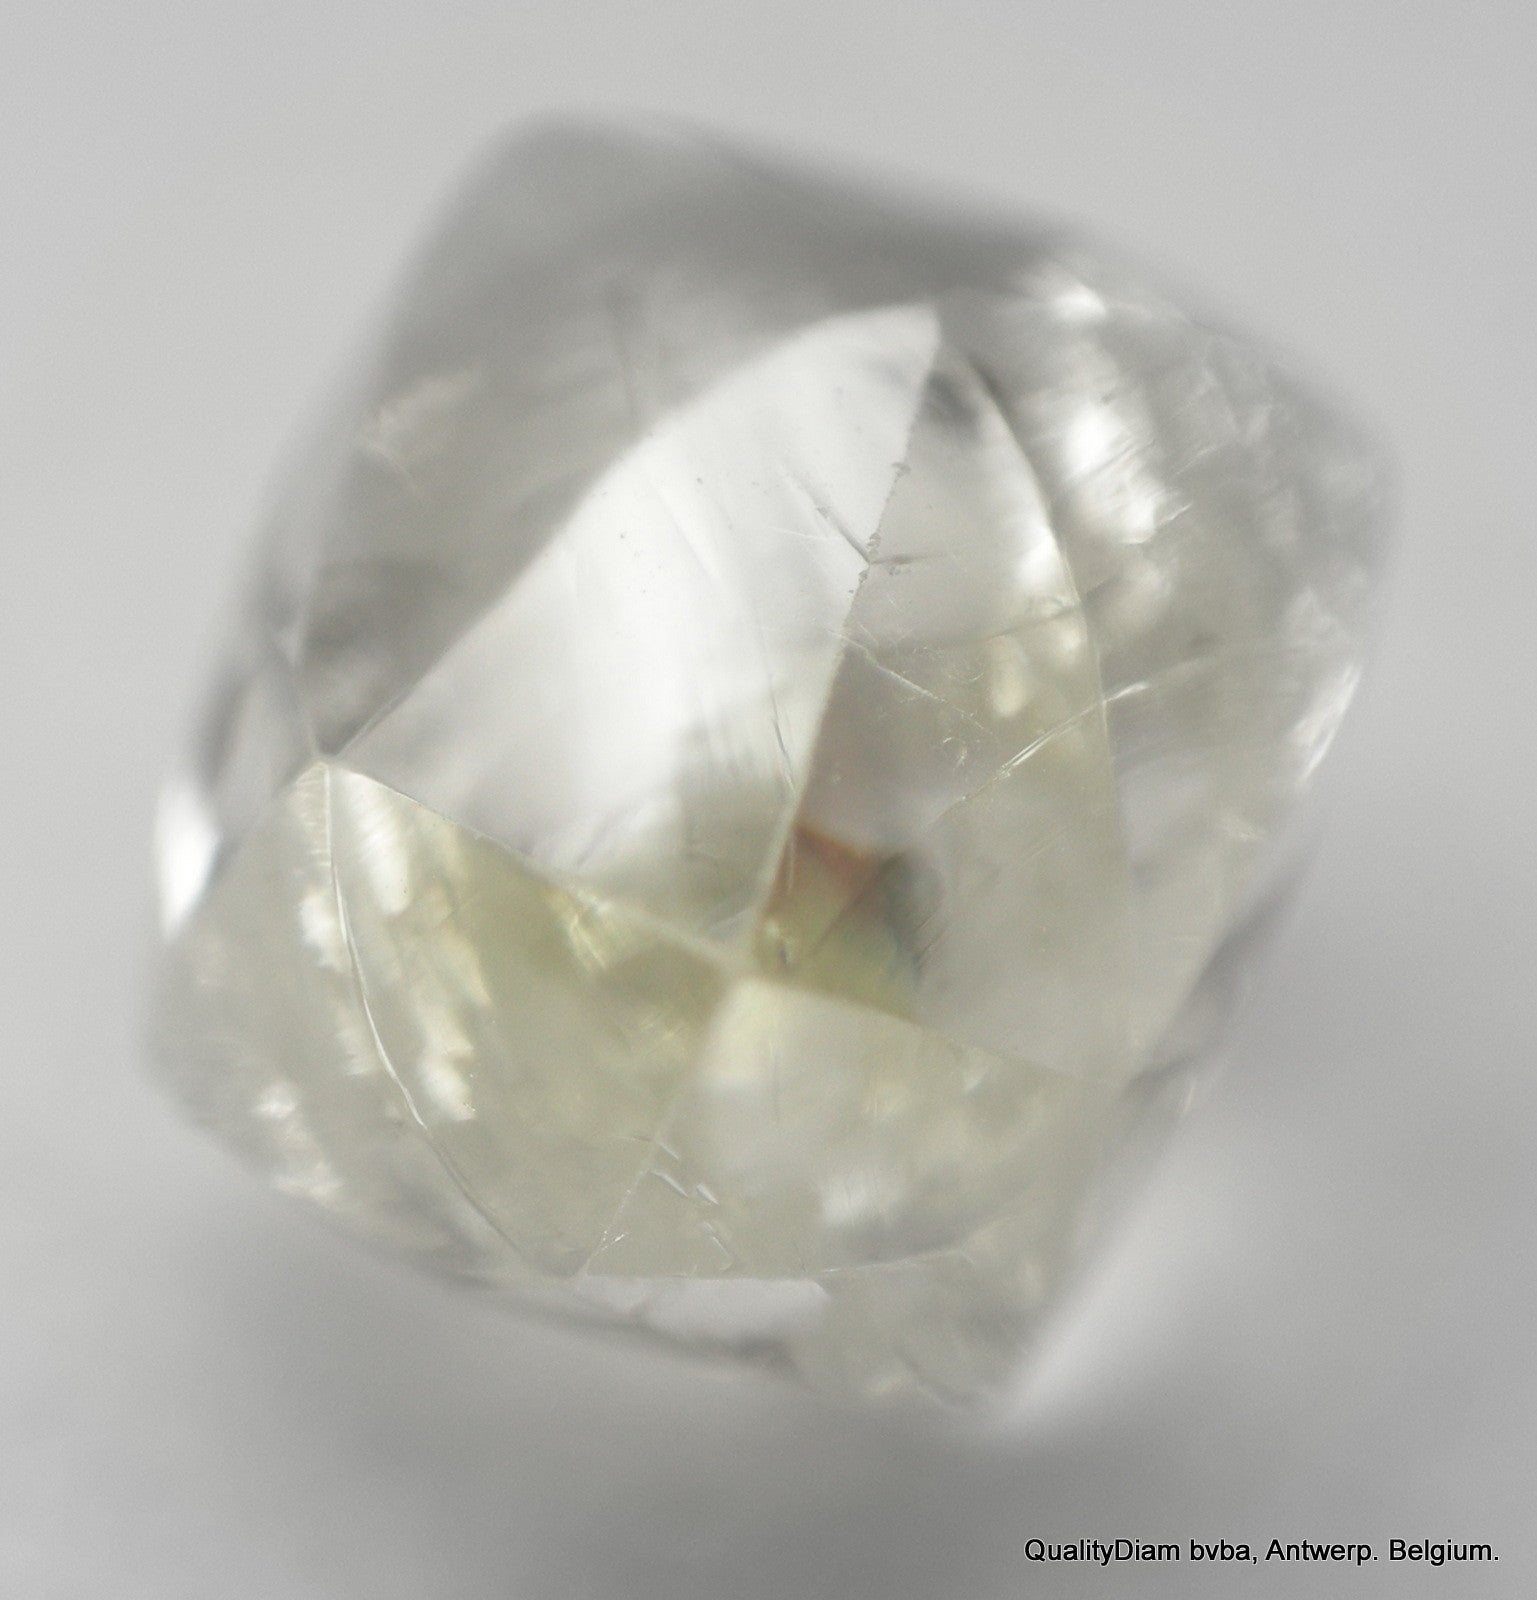 0.78 Carat Raw Mackle Shaped Rough Natural Diamond